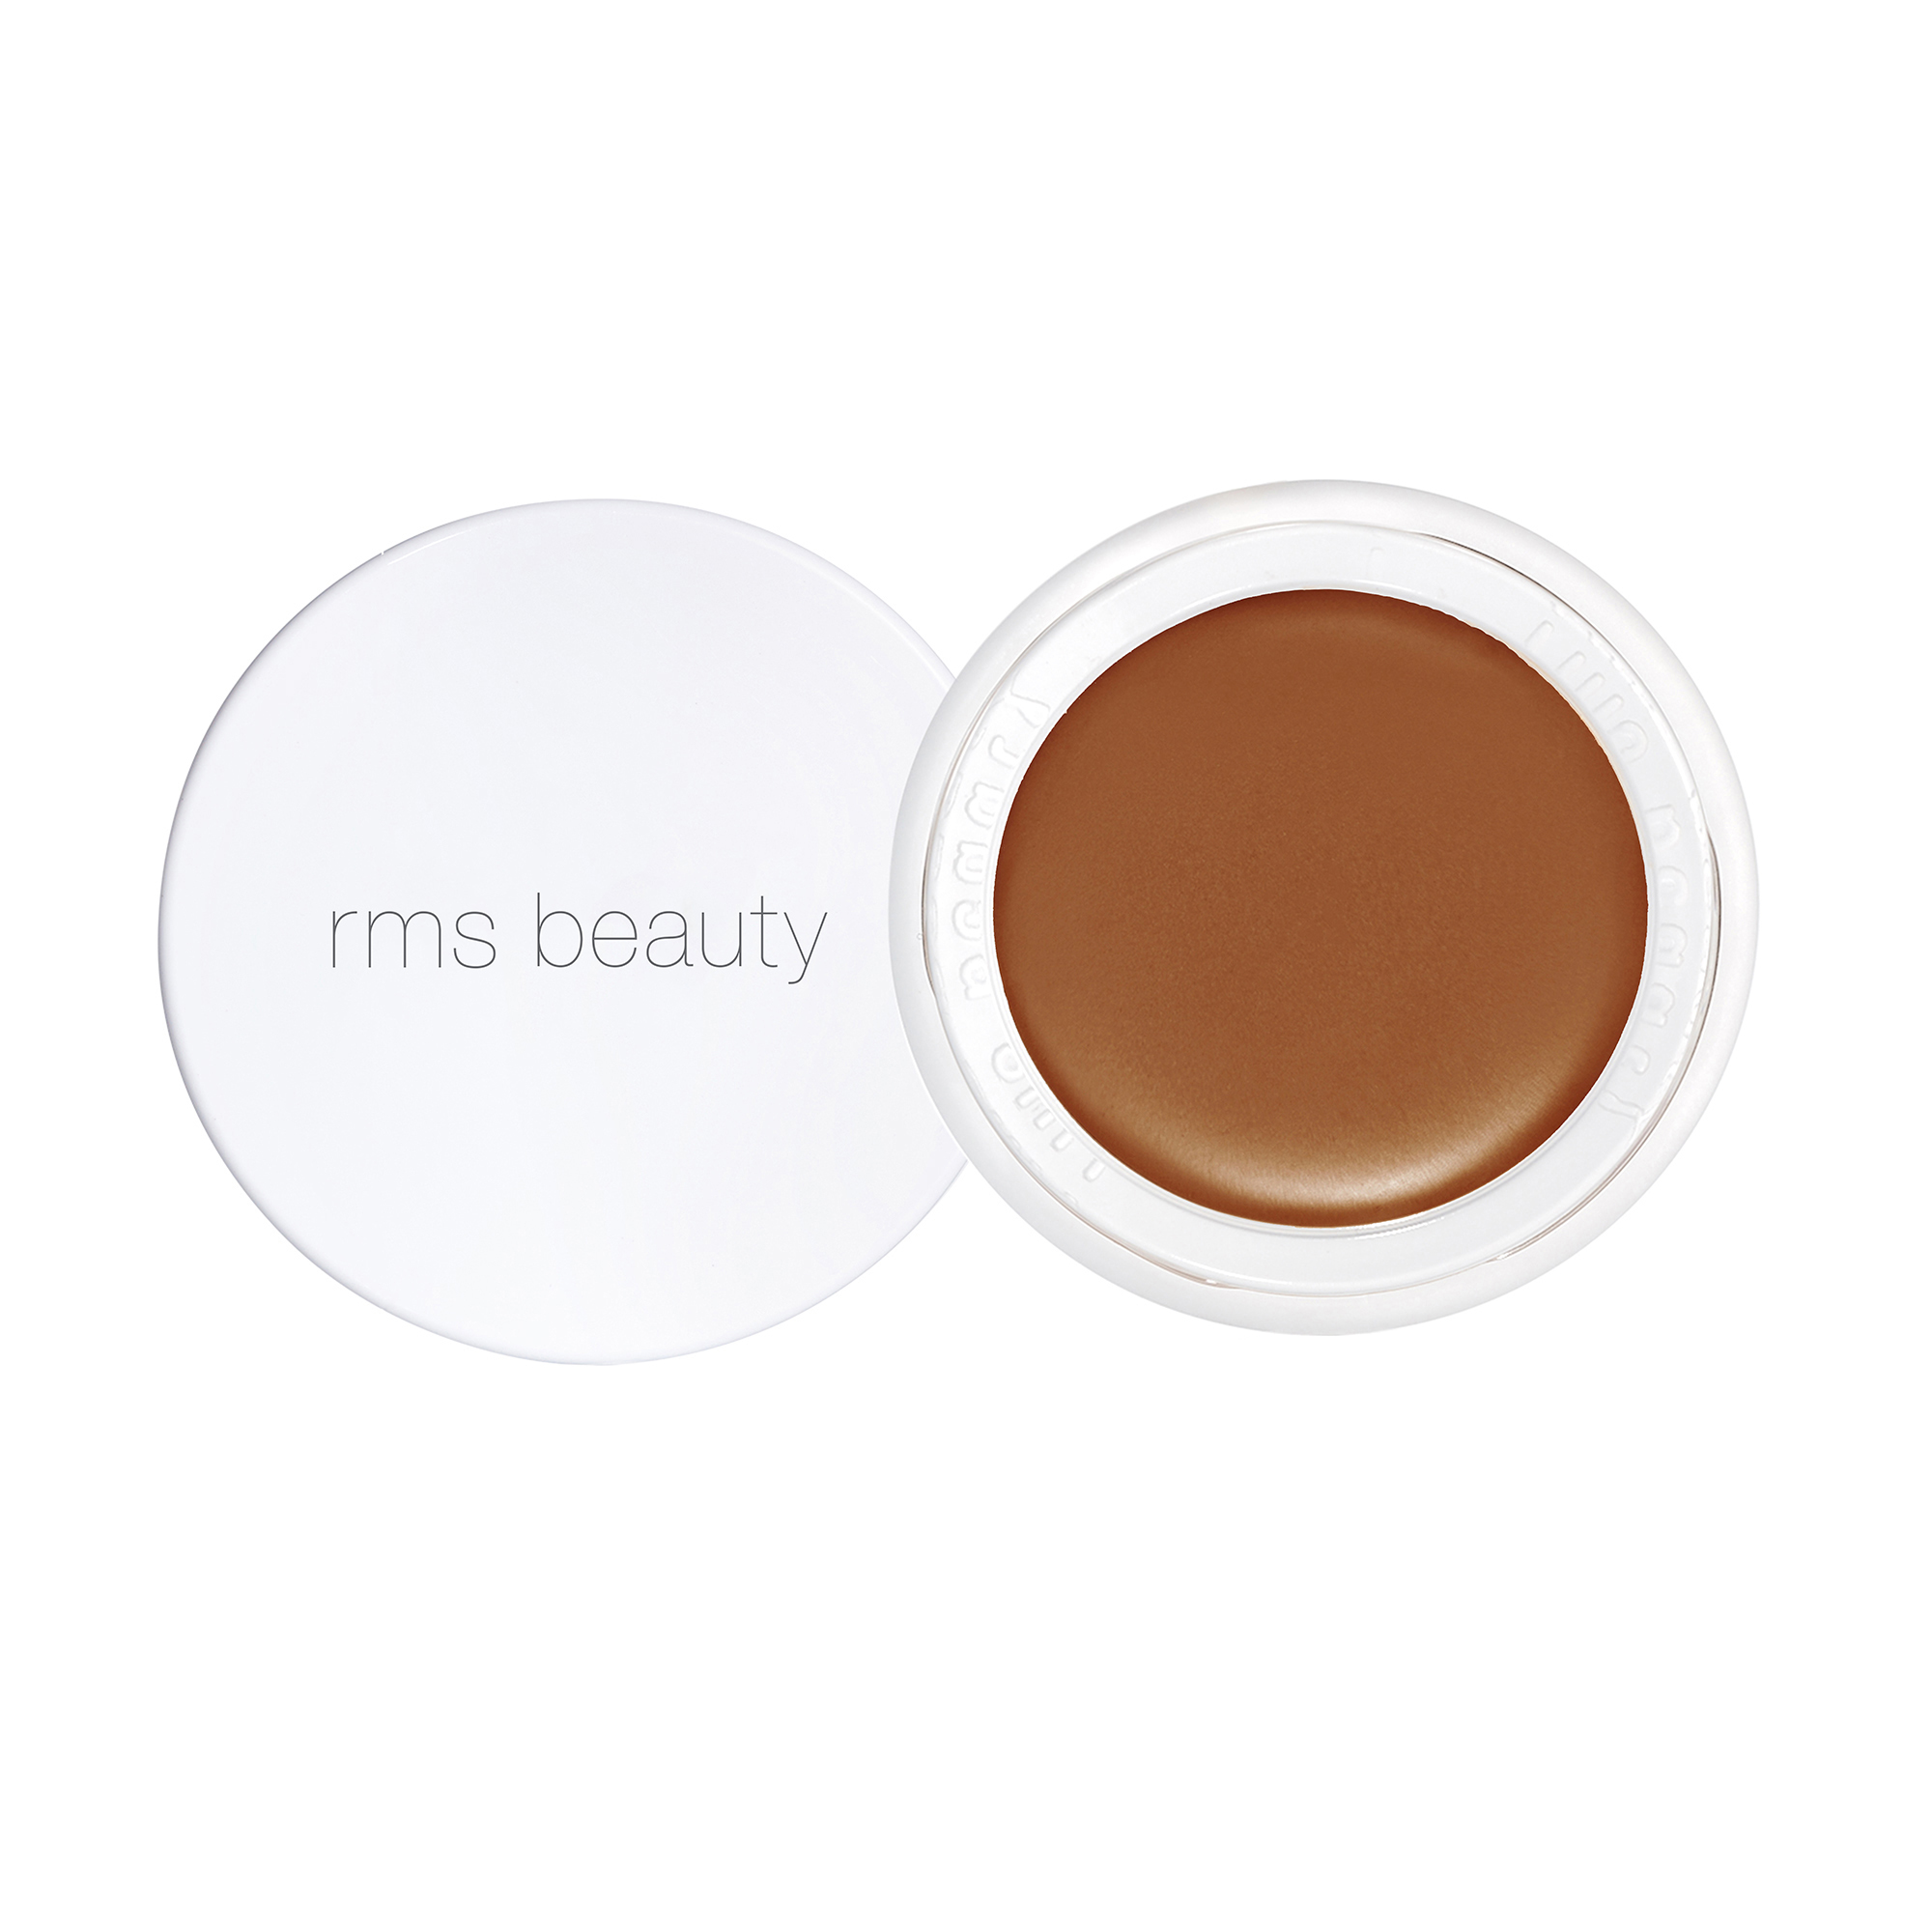 RMS  BEAUTY  КРЕМ КОНСИЛЕР ДЛЯ ЛИЦА  UN COVER-UP CREAM CONCEALER  99